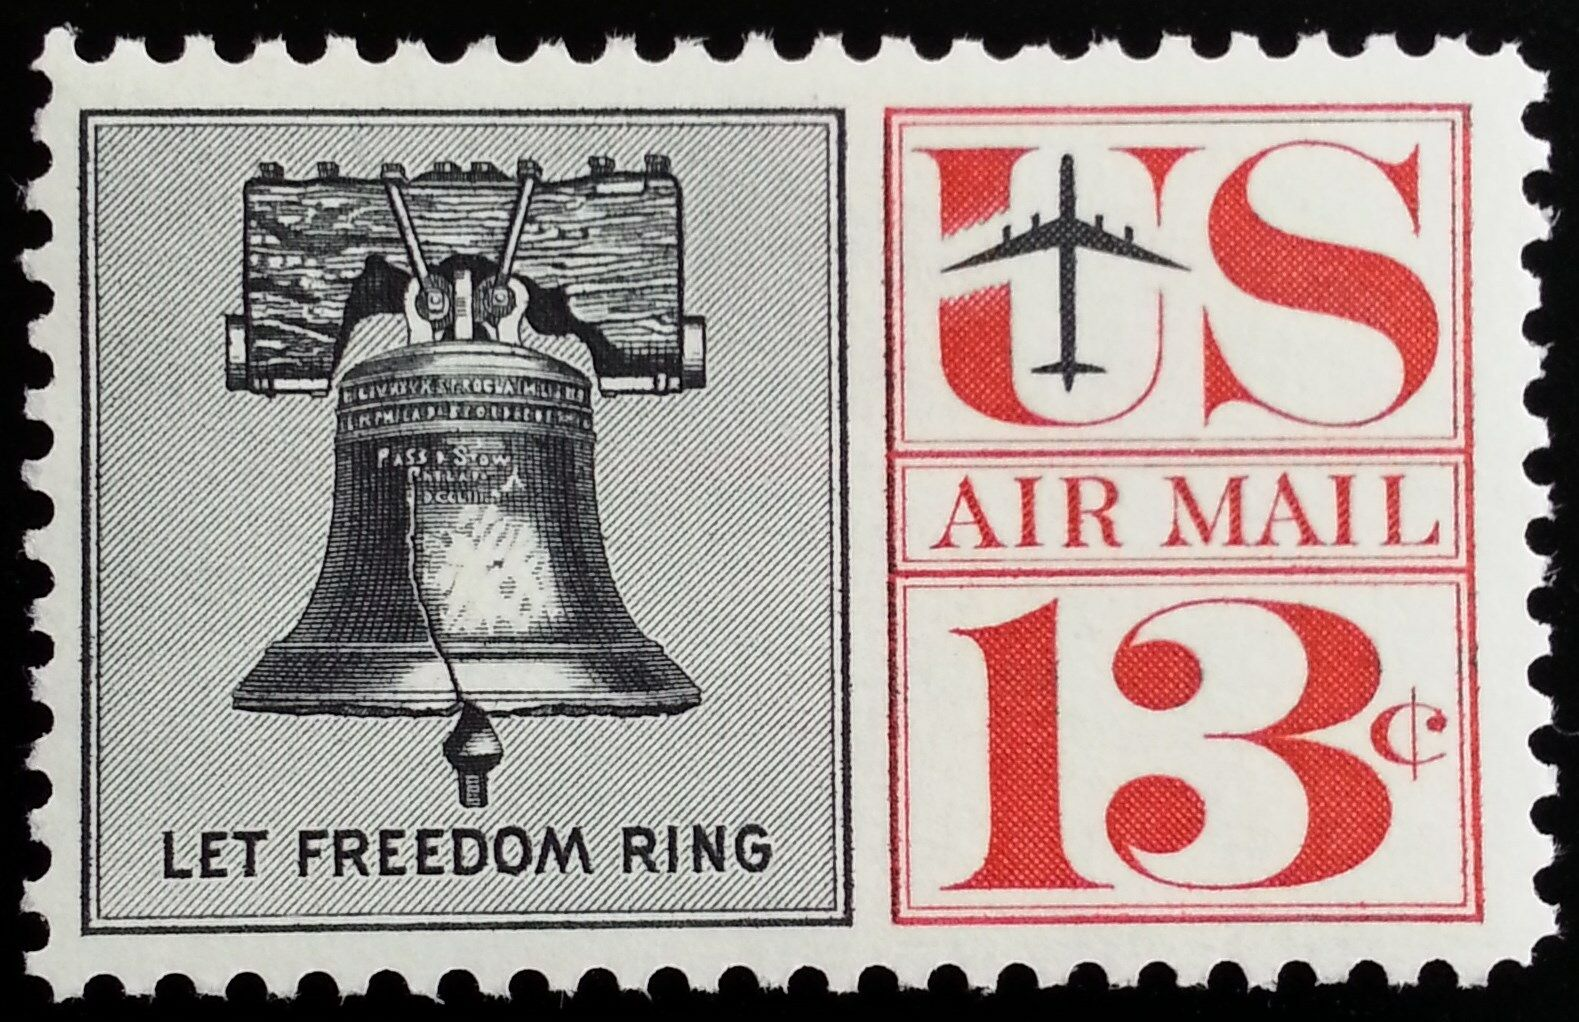 1961 13c Liberty Bell, Let Freedom Ring, Air Mail Scott